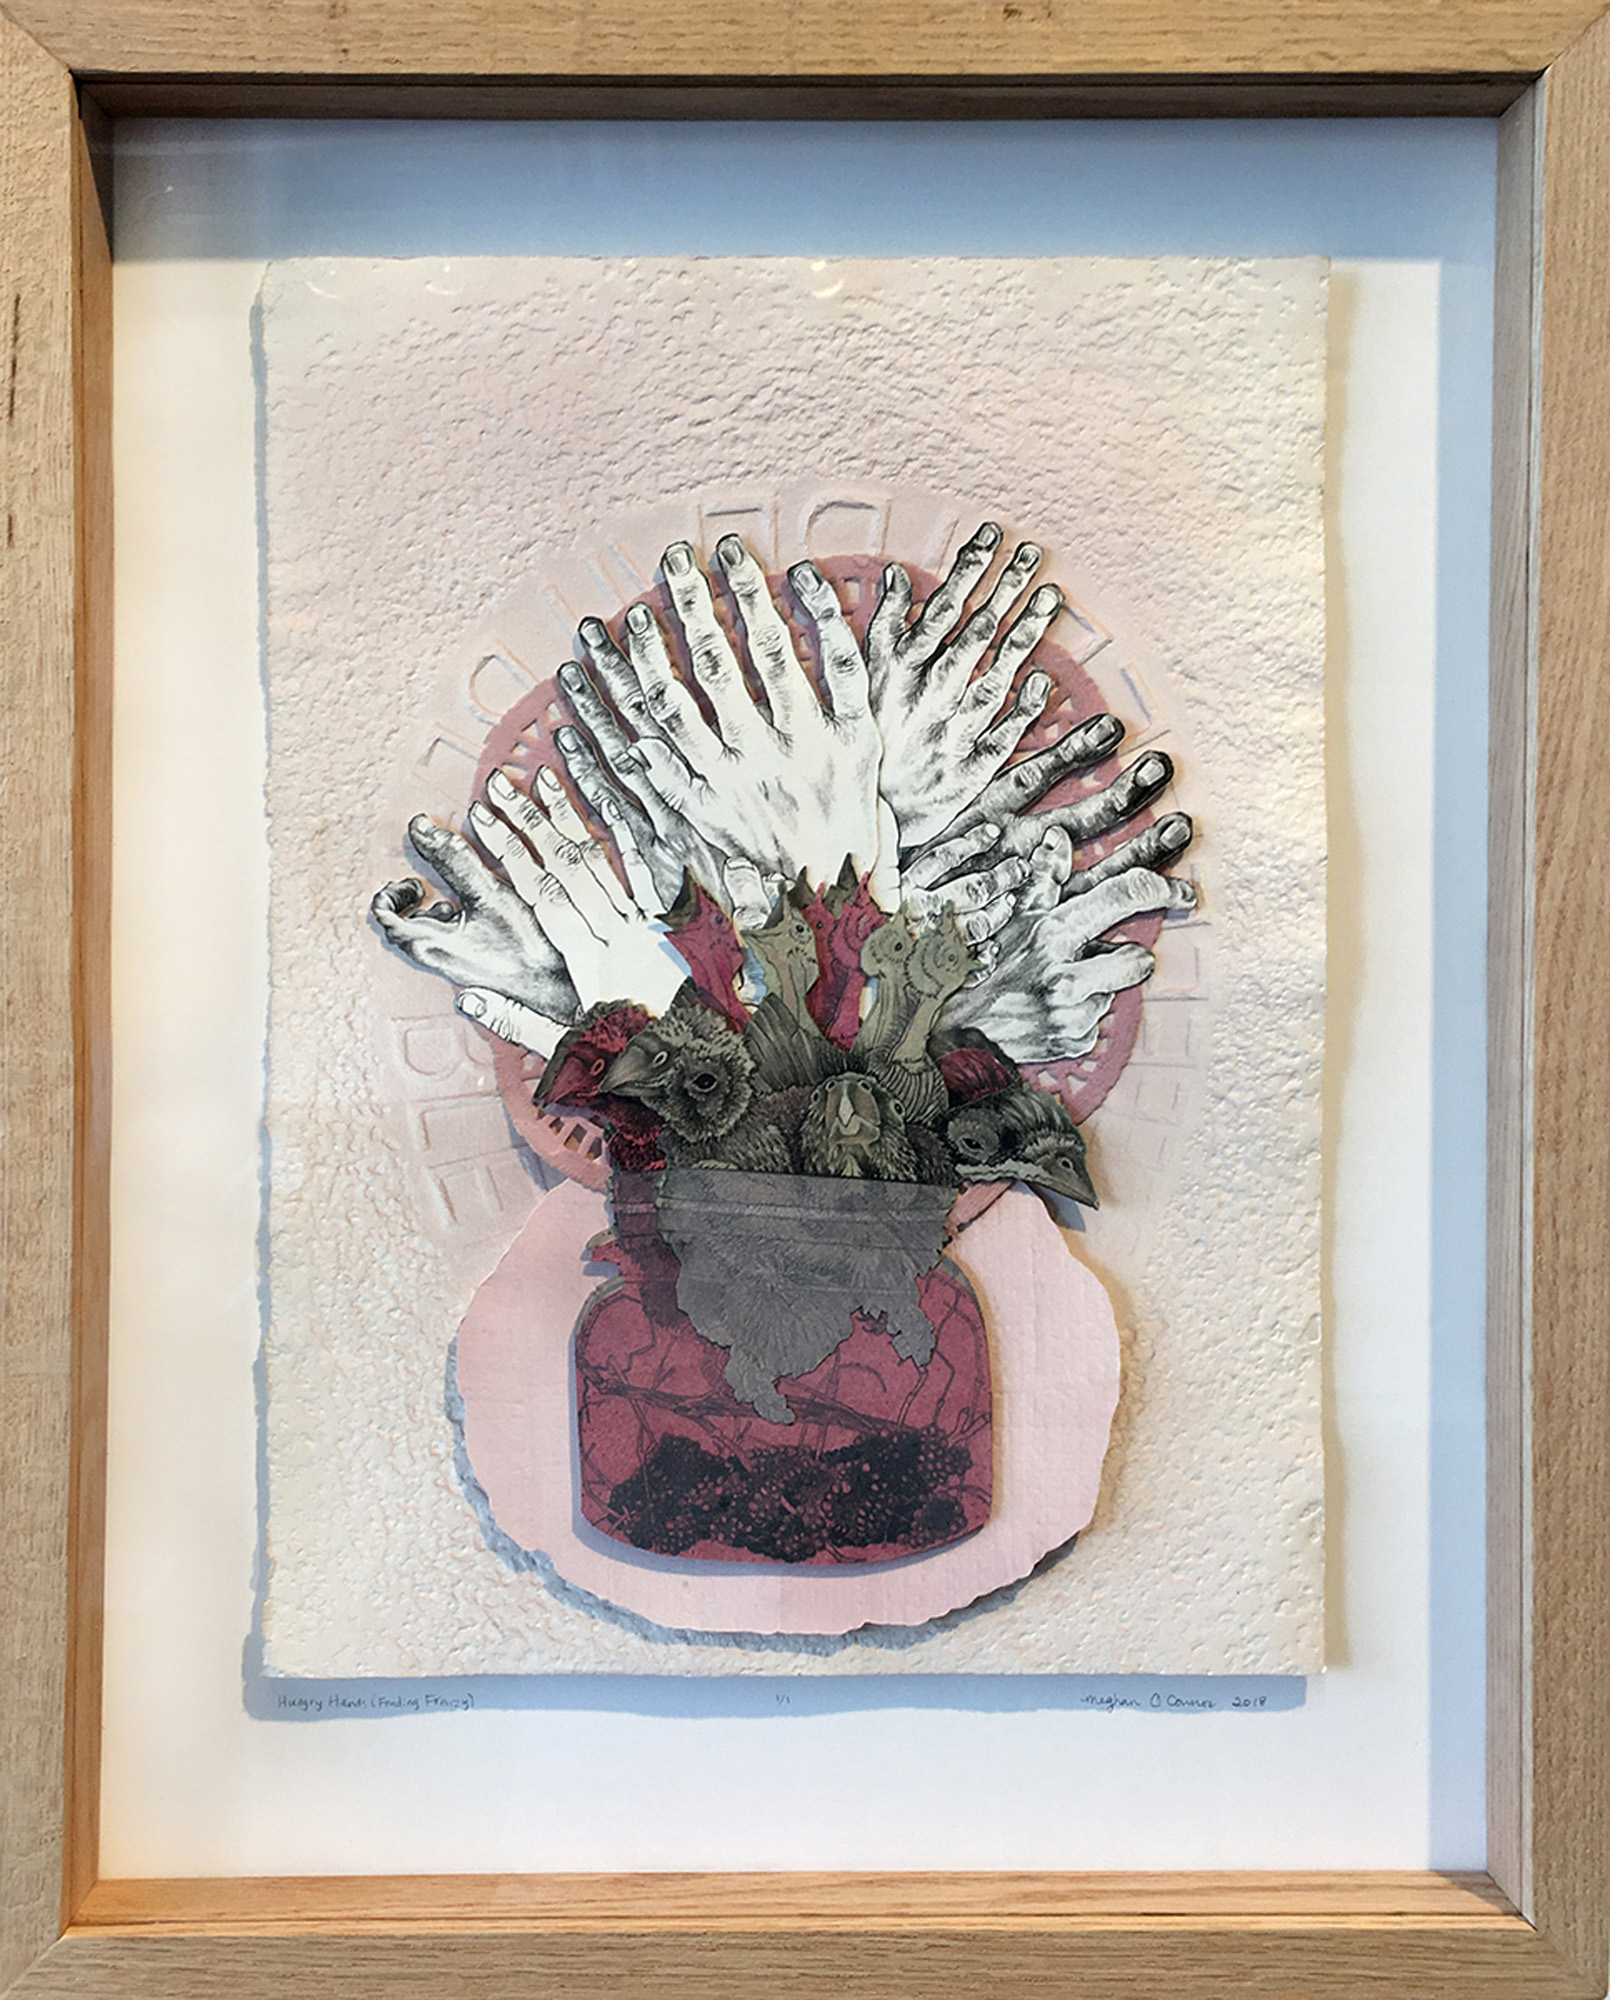 Meghan OConnor    Hungry Hands (Feeding Frenzy)  collaged lithograph & collagraph, wax, colored pencil 20 x 18 inches, APS 241G